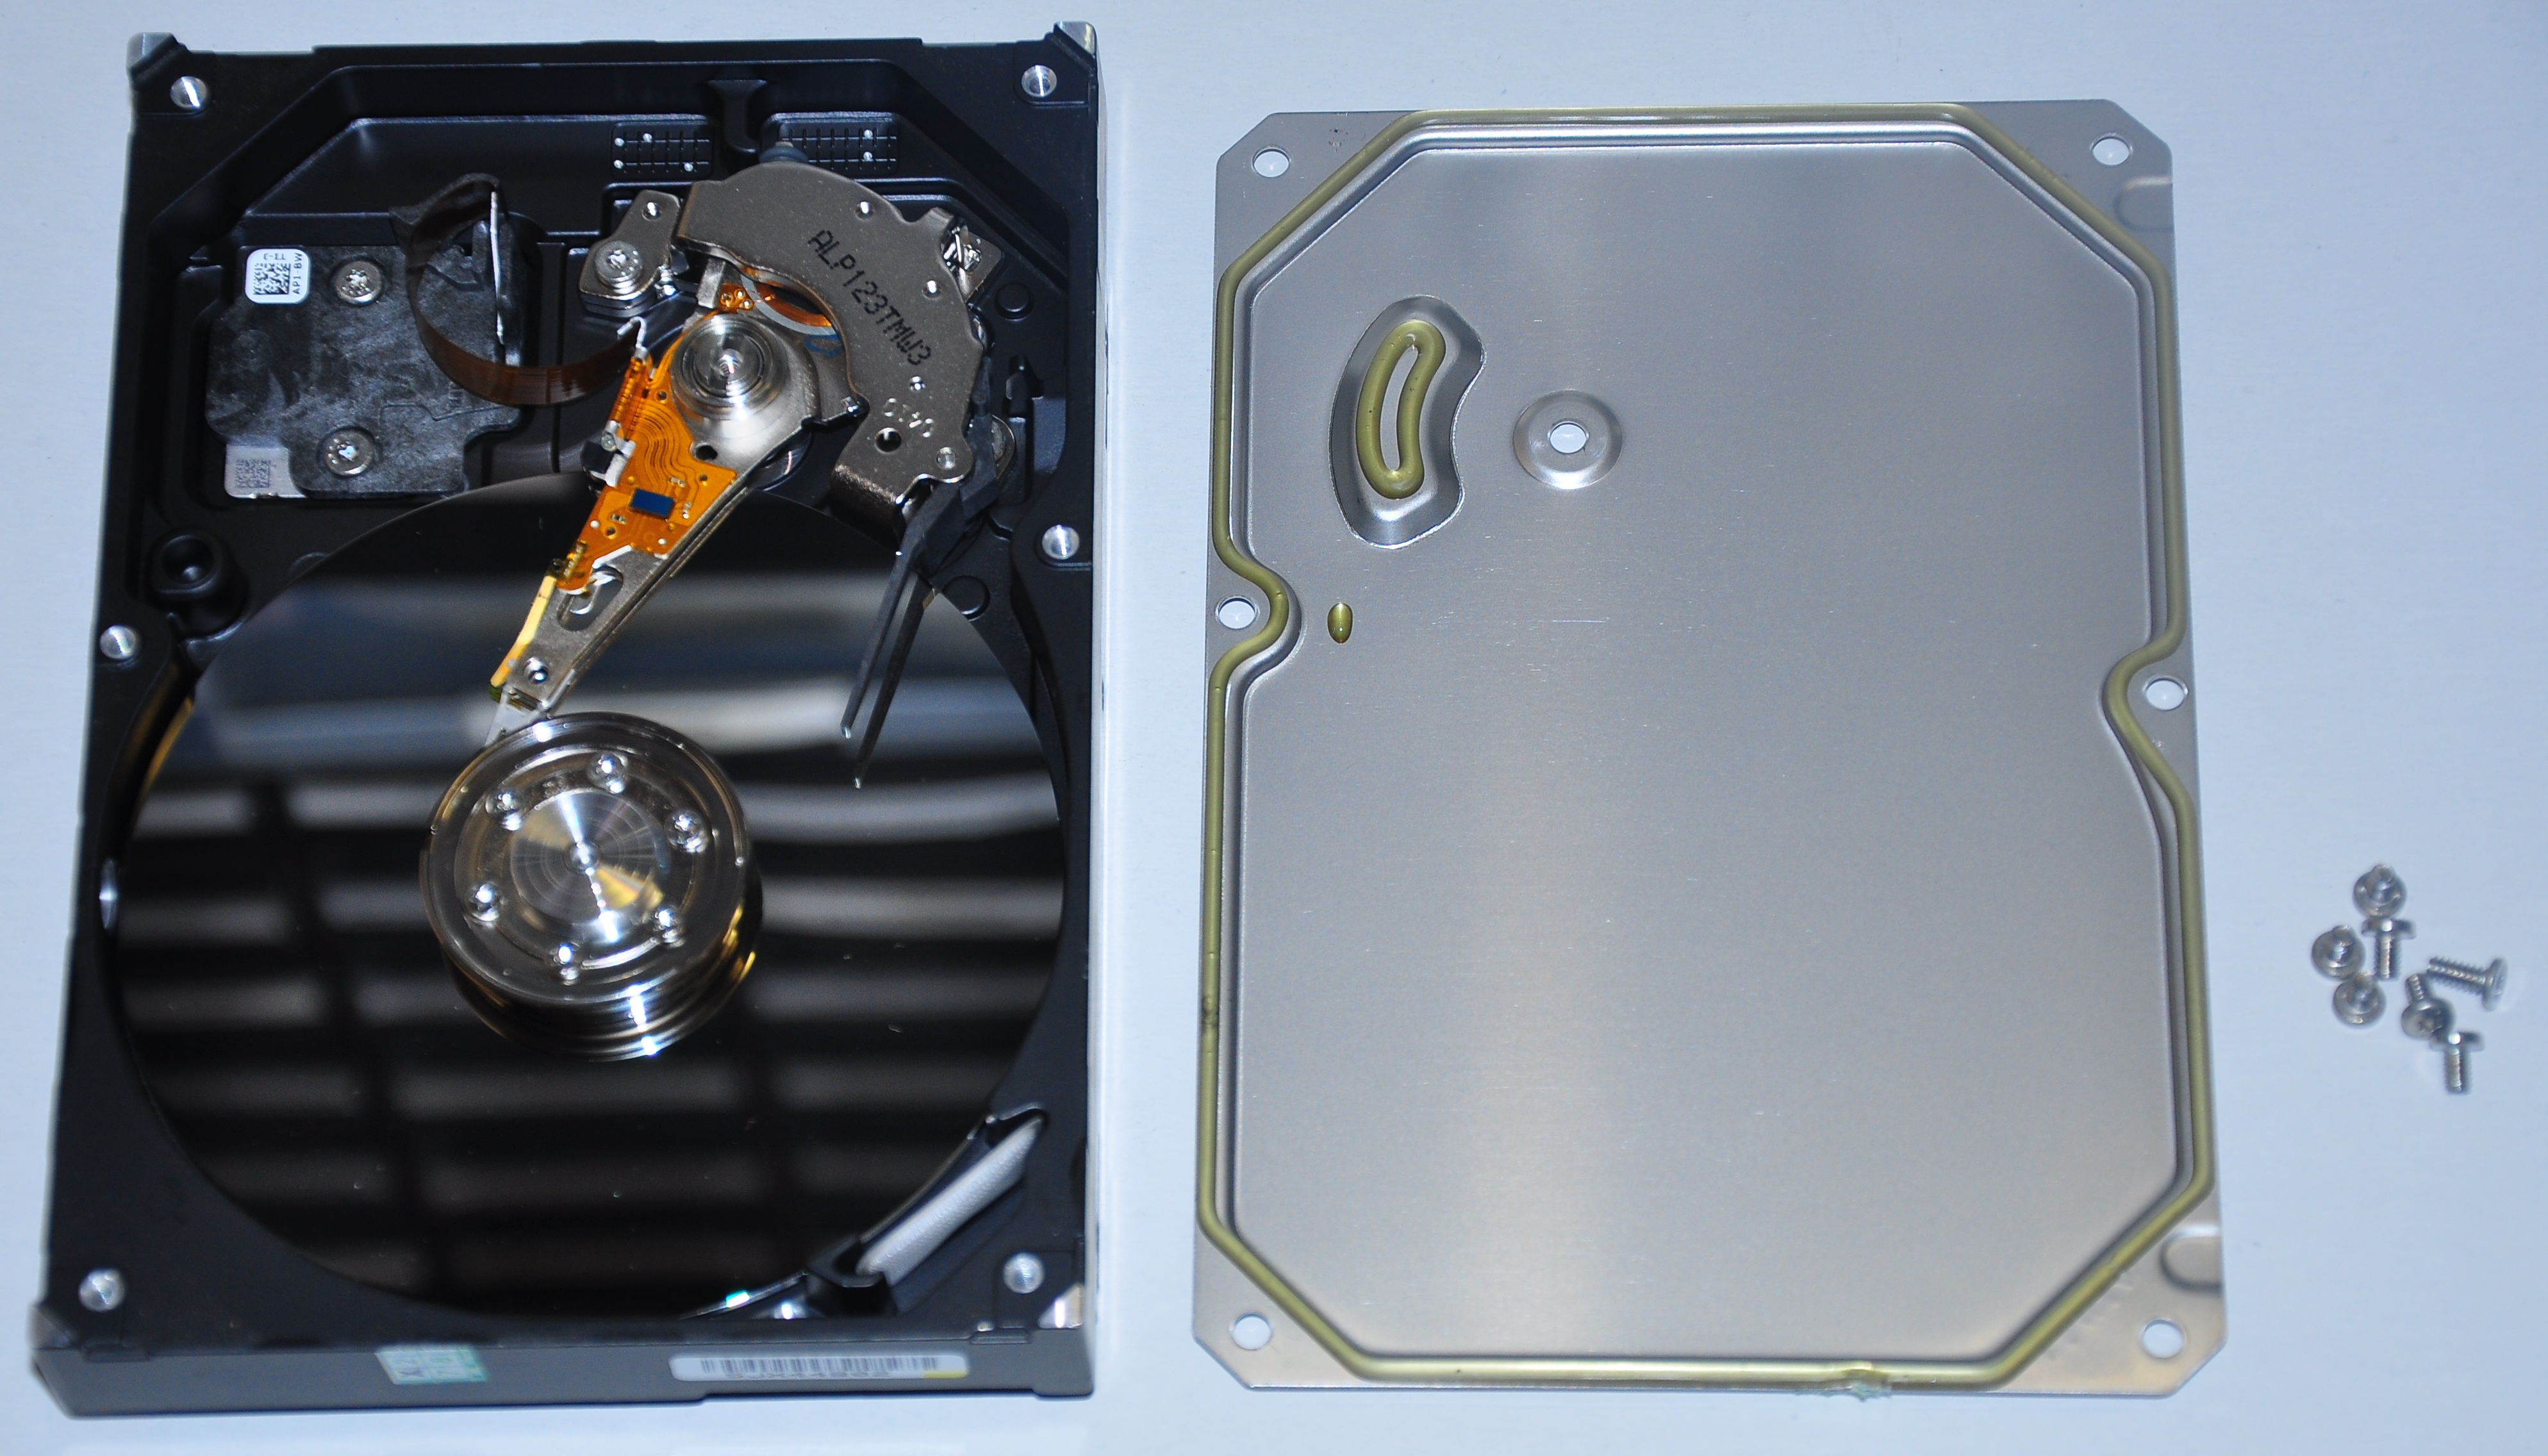 Picture of The Base - Cleaning Off the Hard Drive Unit